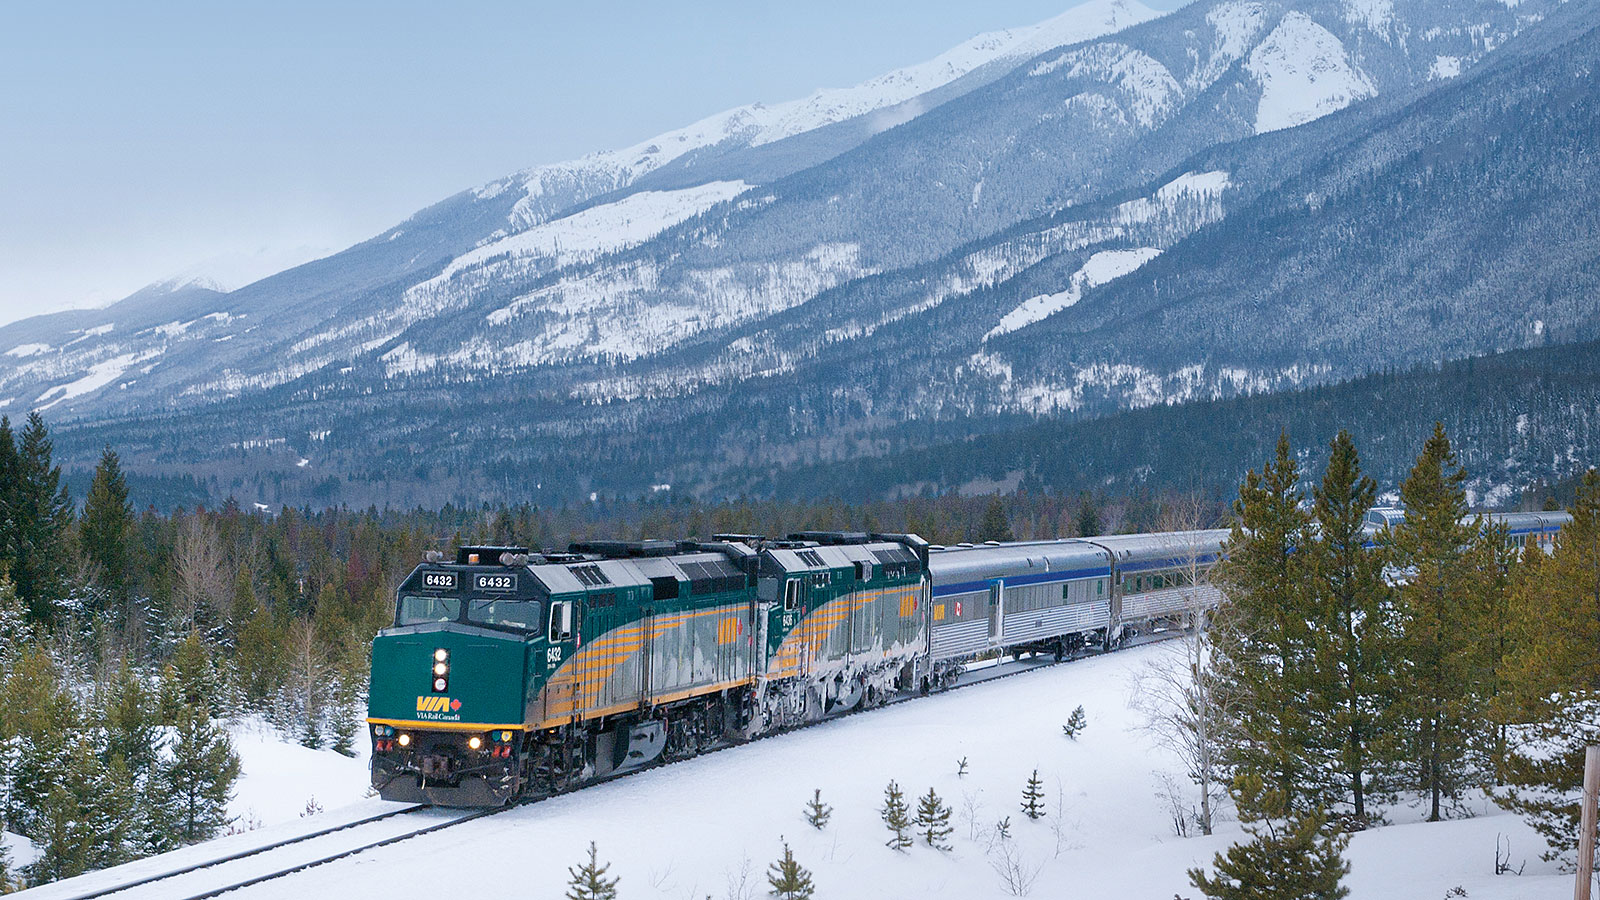 Riding the Canadian rails: 2 experiences on different tracks